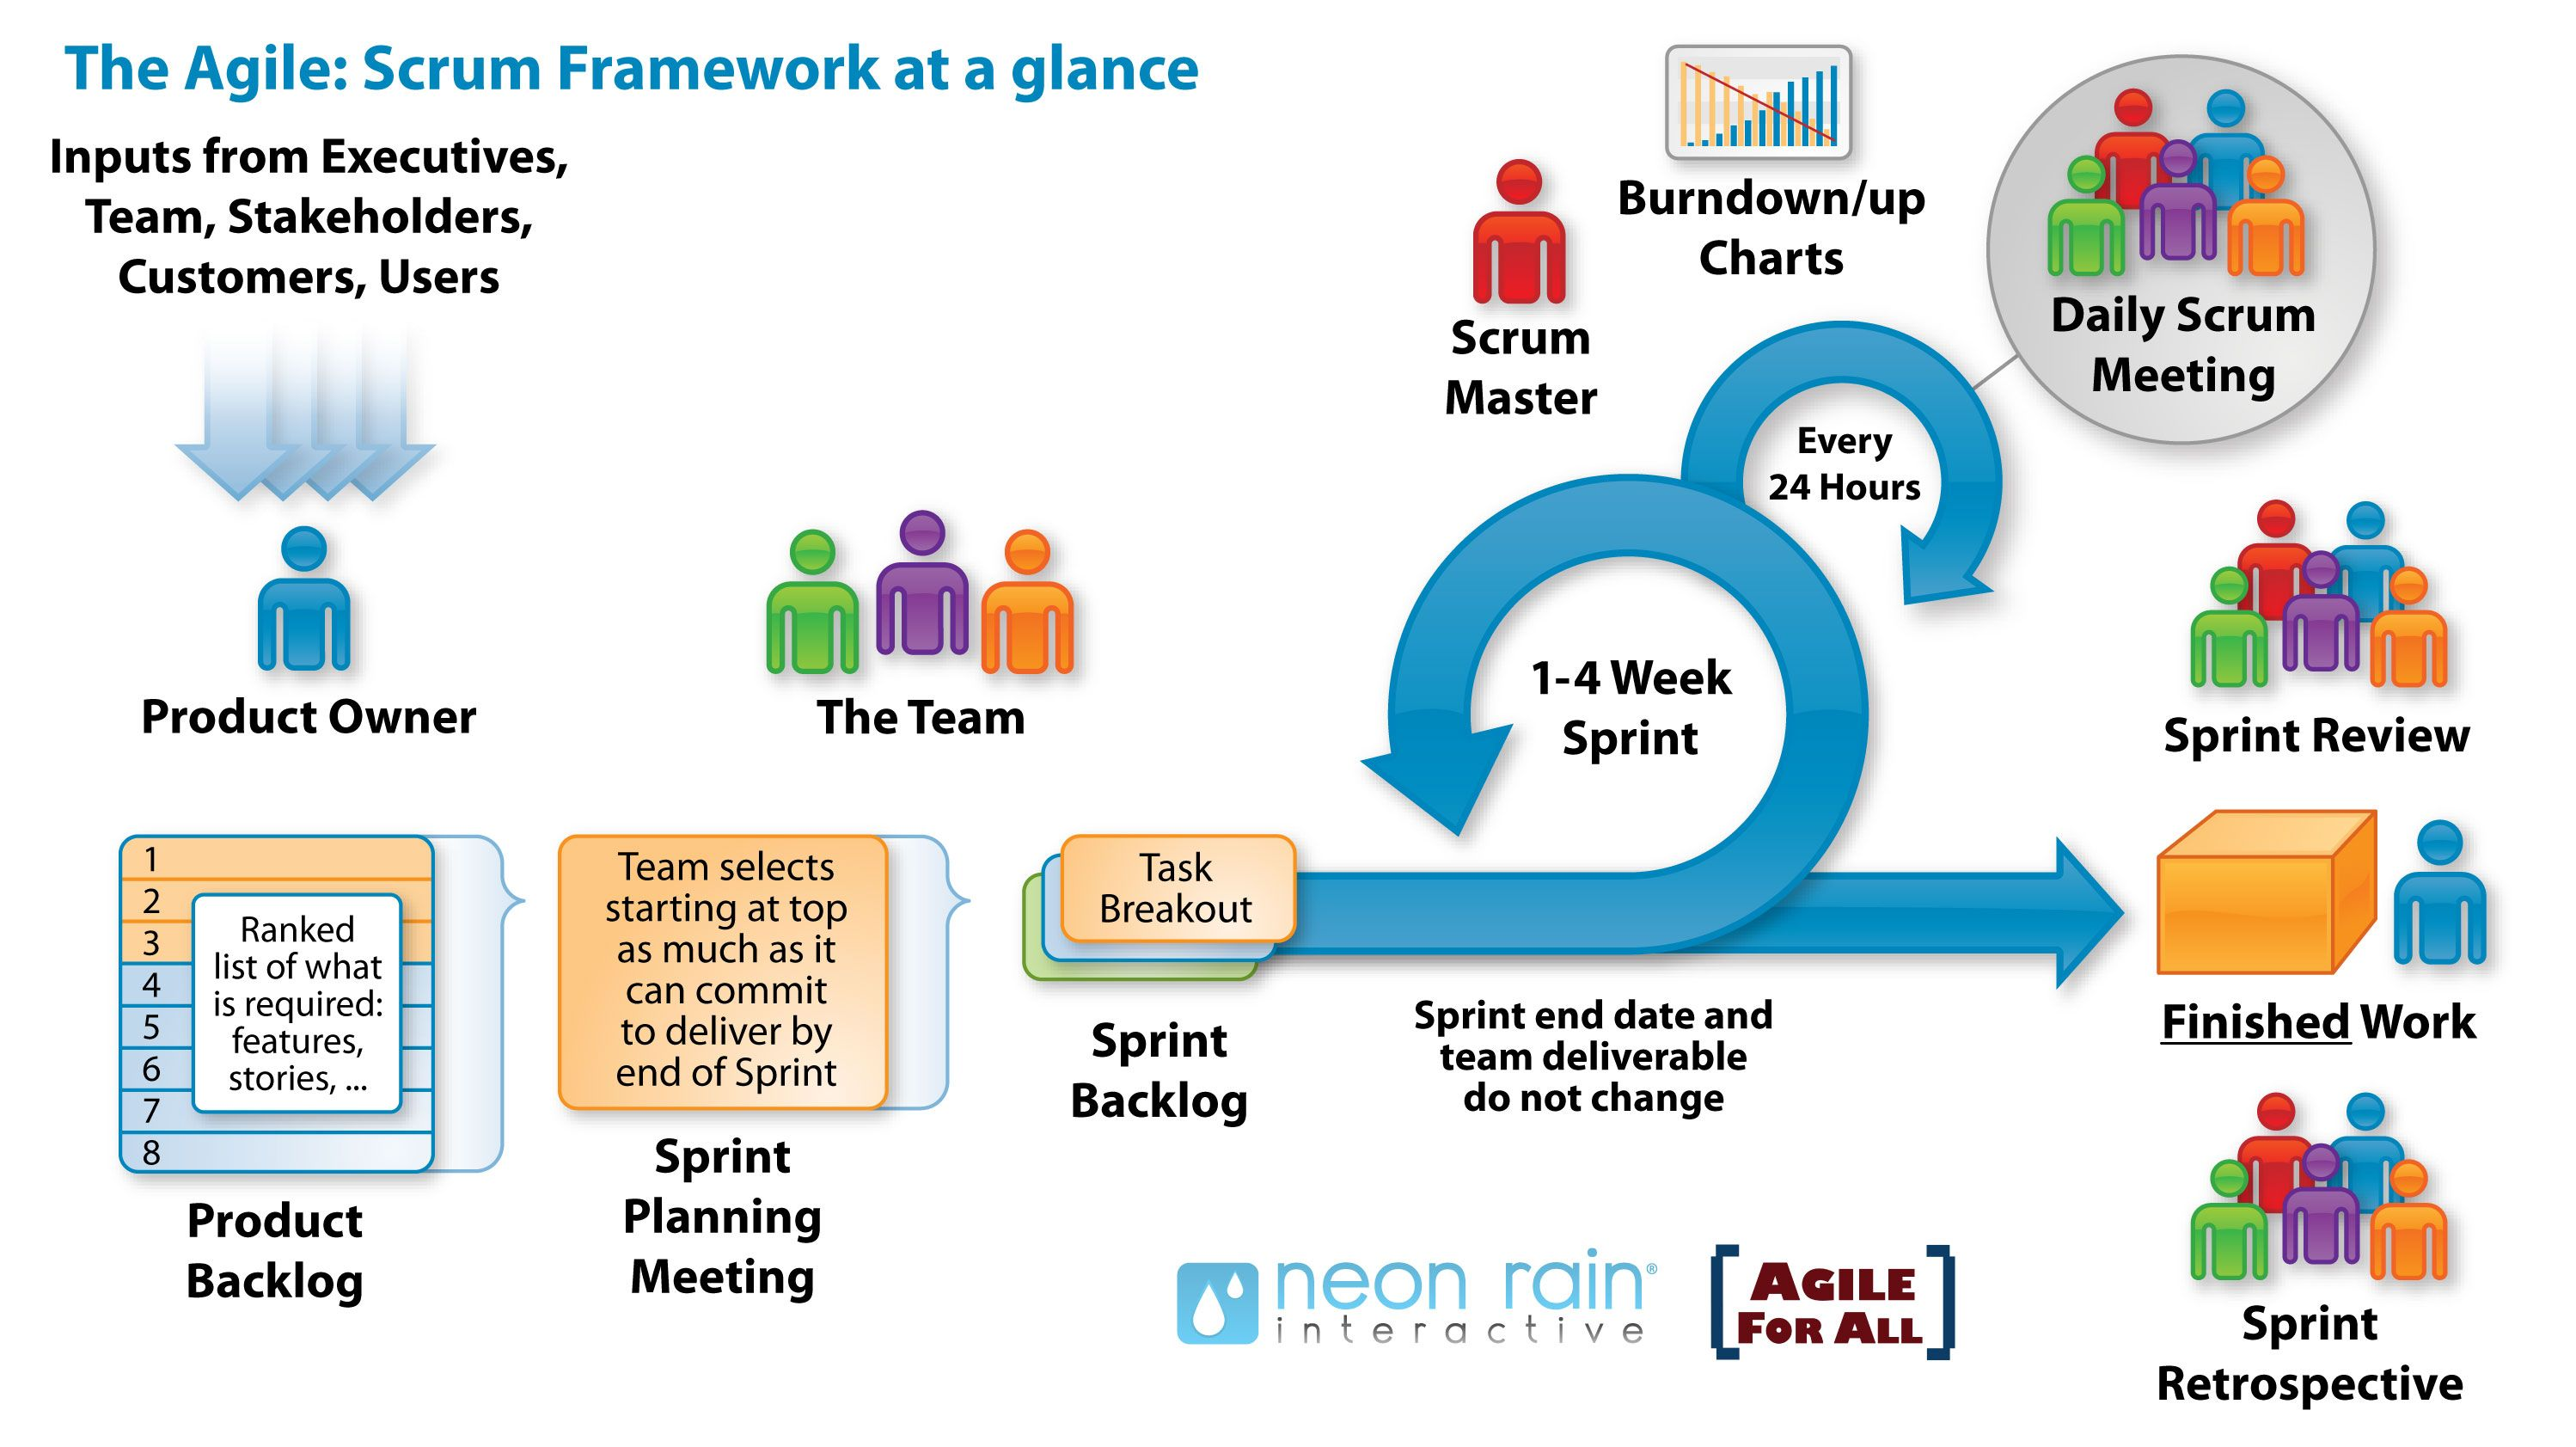 images about scrum on pinterest   project management        images about scrum on pinterest   project management  business analyst and masters